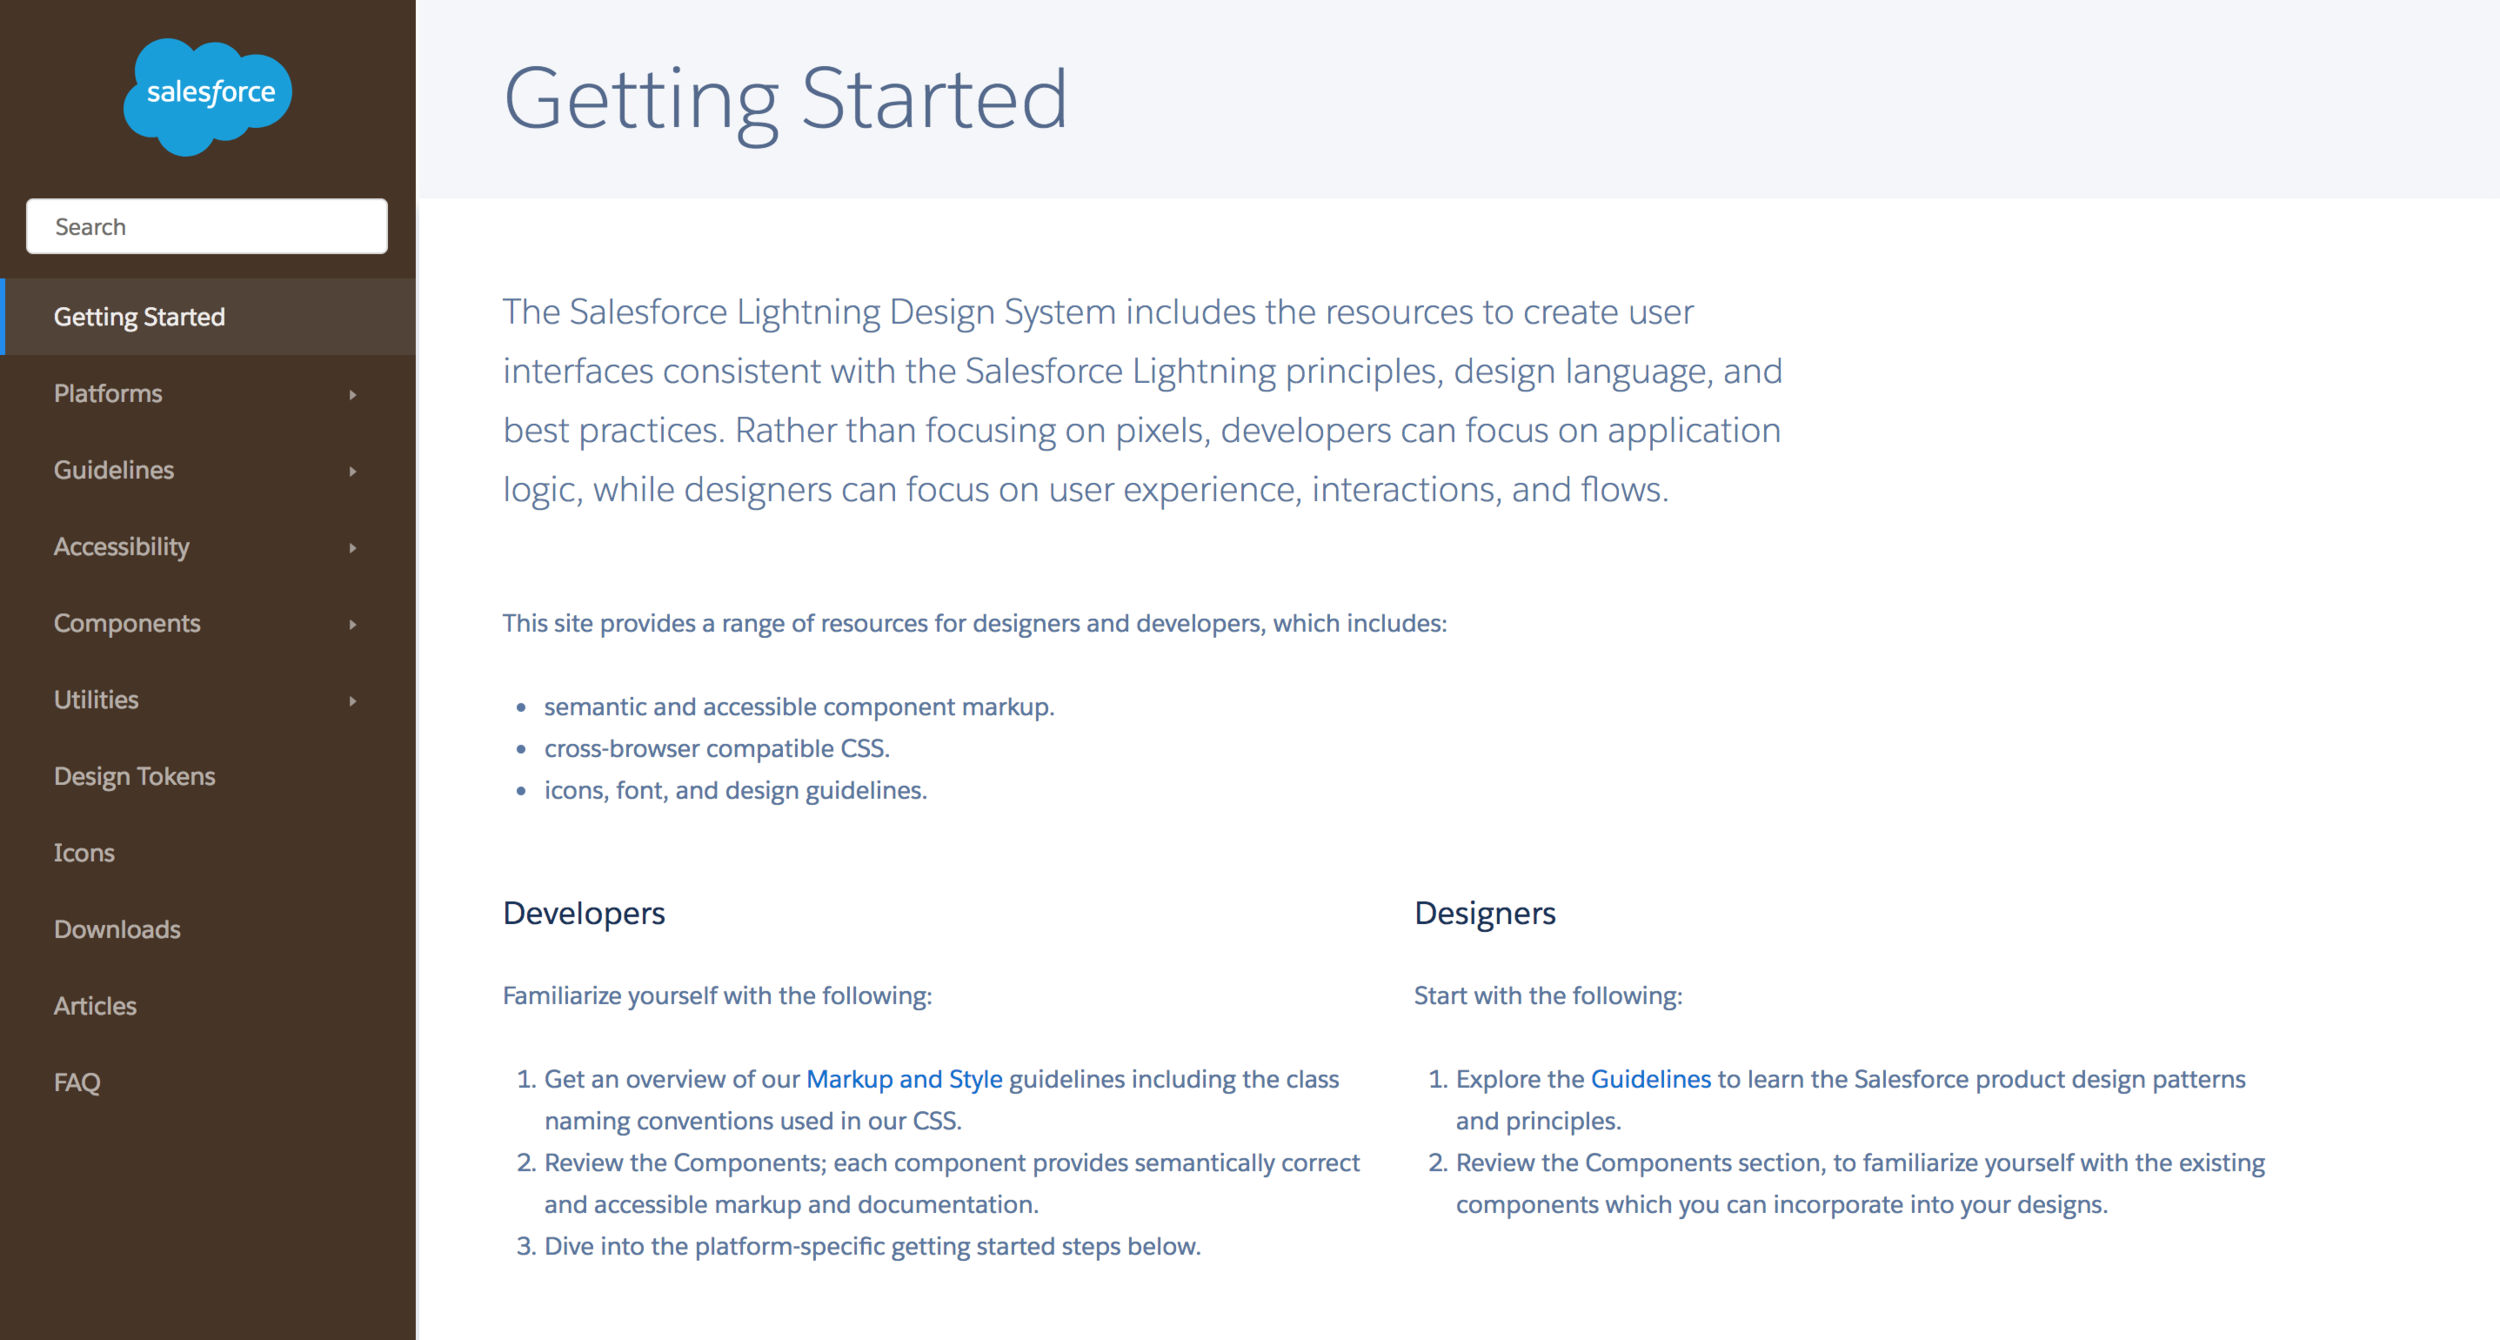 https://www.lightningdesignsystem.com/getting-started/